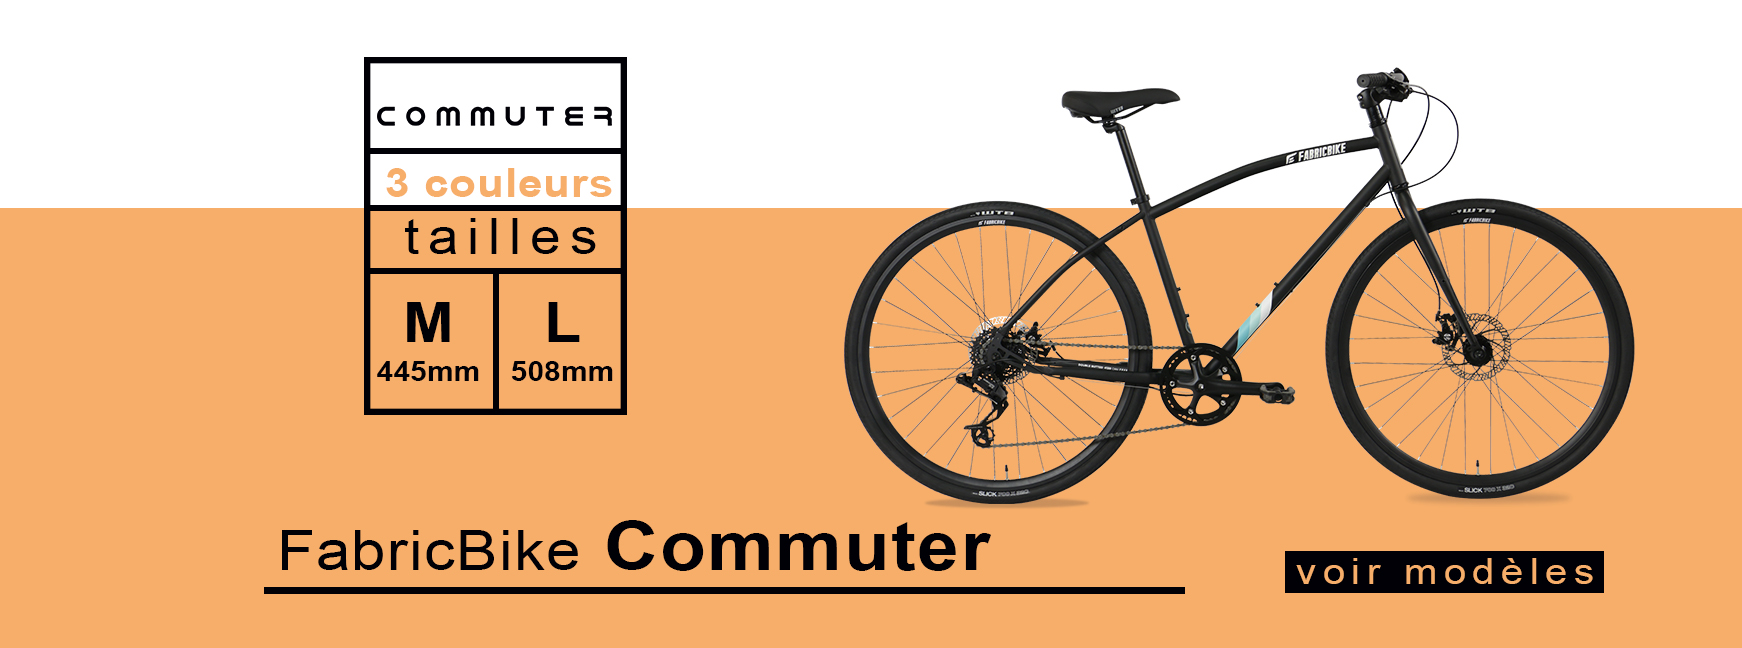 BANNER_COMMUTER_FR_PC